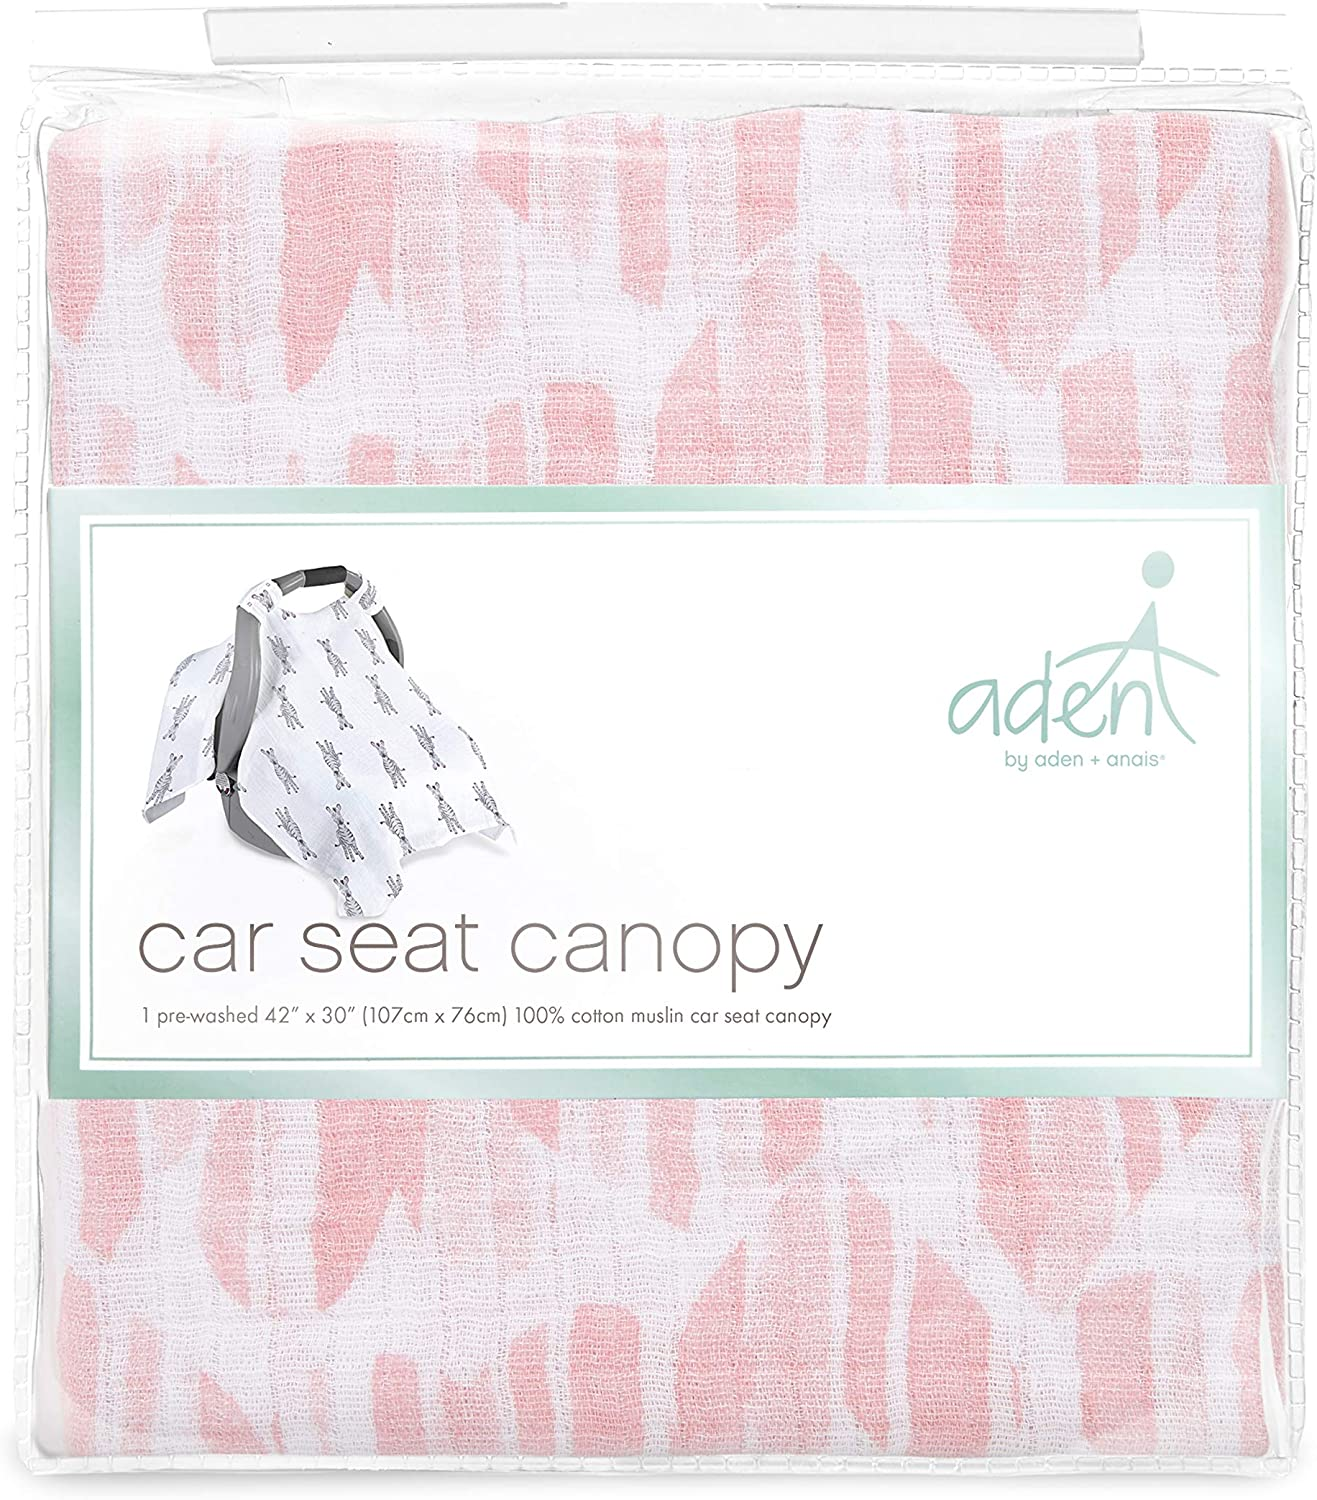 anais Car Seat Canopy 100/% Cotton Muslin aden by aden Retro Washed Star